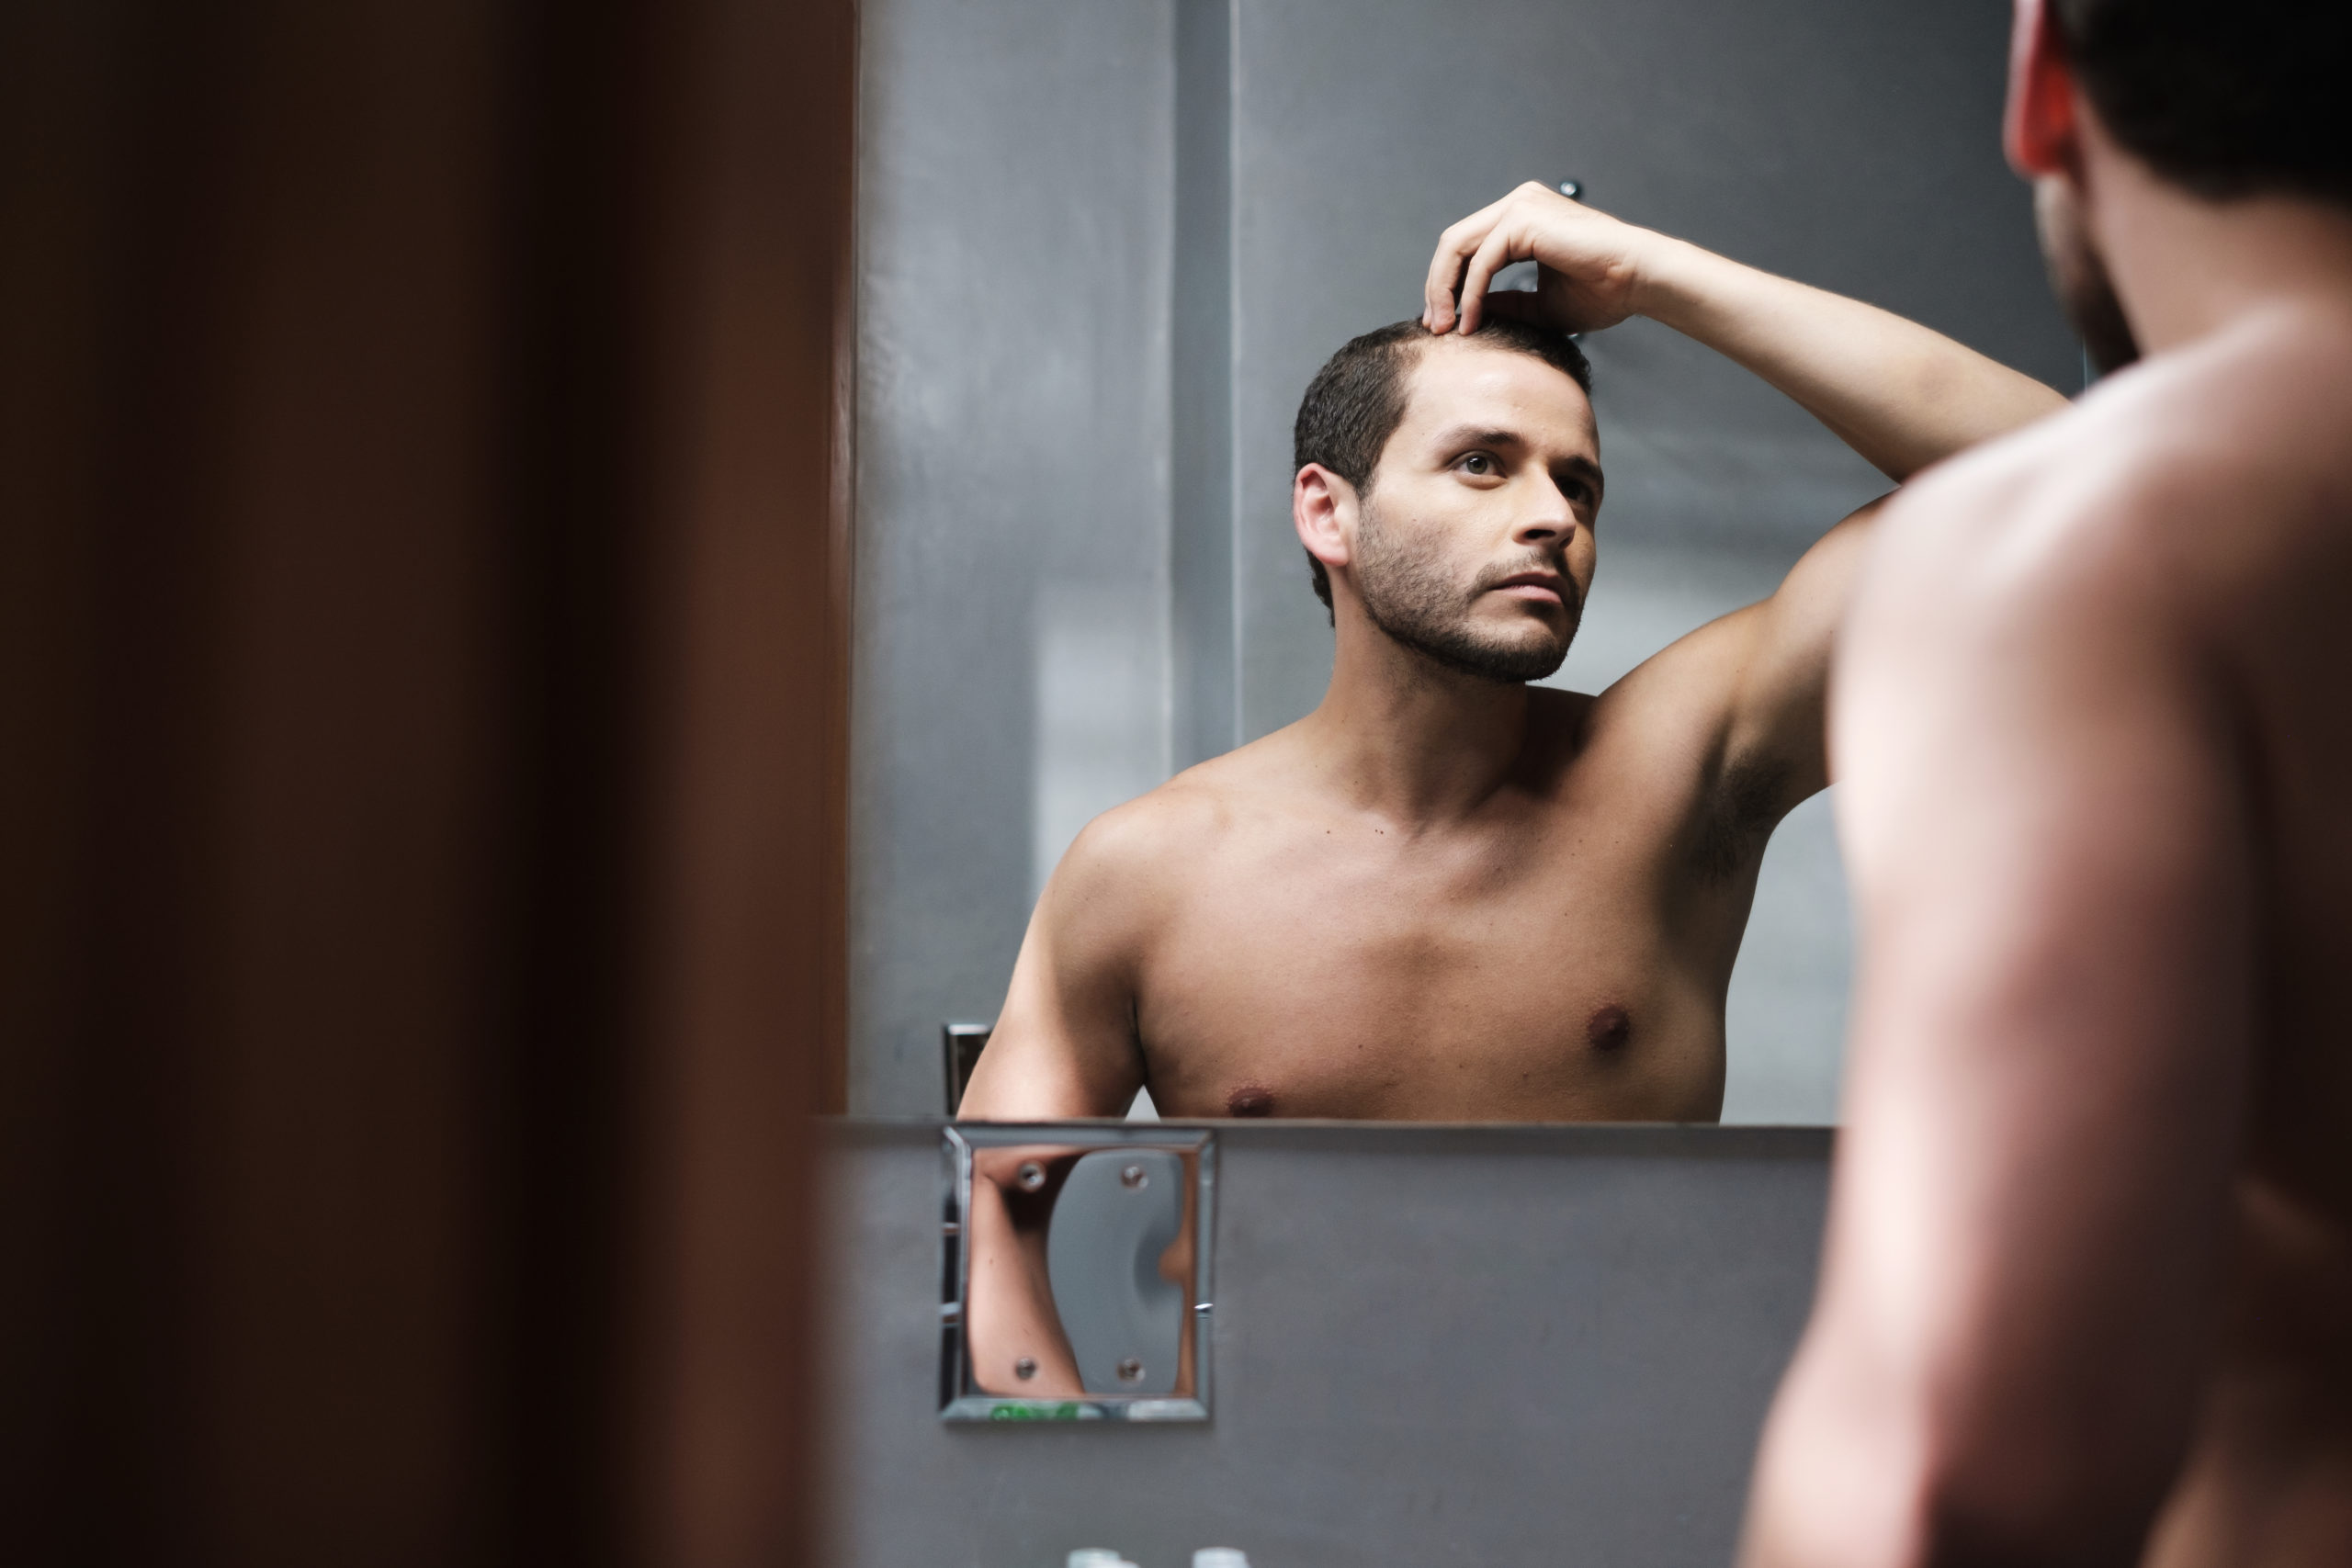 Man checking his hairline in a mirror